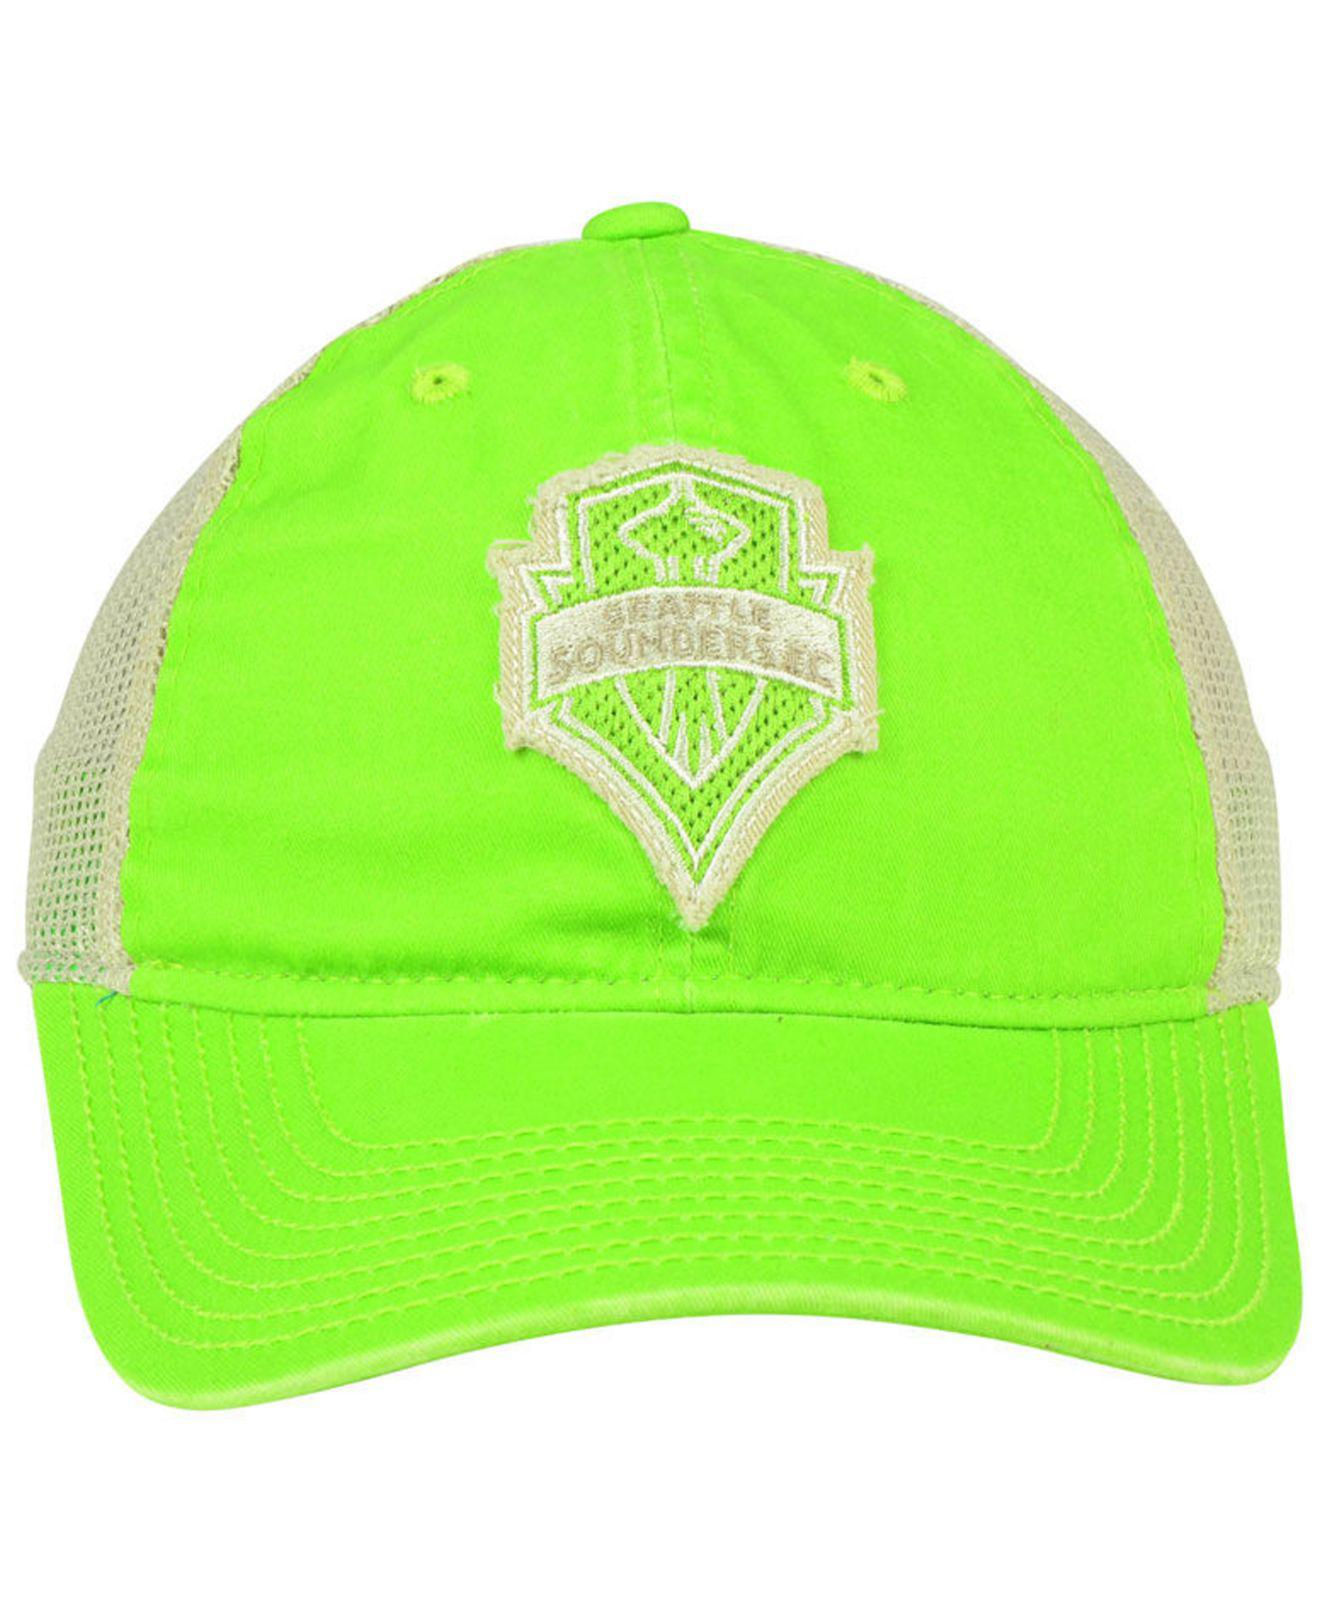 brand new 227c8 67949 coupon for adidas columbus crew sc cuff knit sports fan shop by lids men  617f8 85a3e  coupon code for lyst adidas seattle sounders fc bleached  trucker cap ...